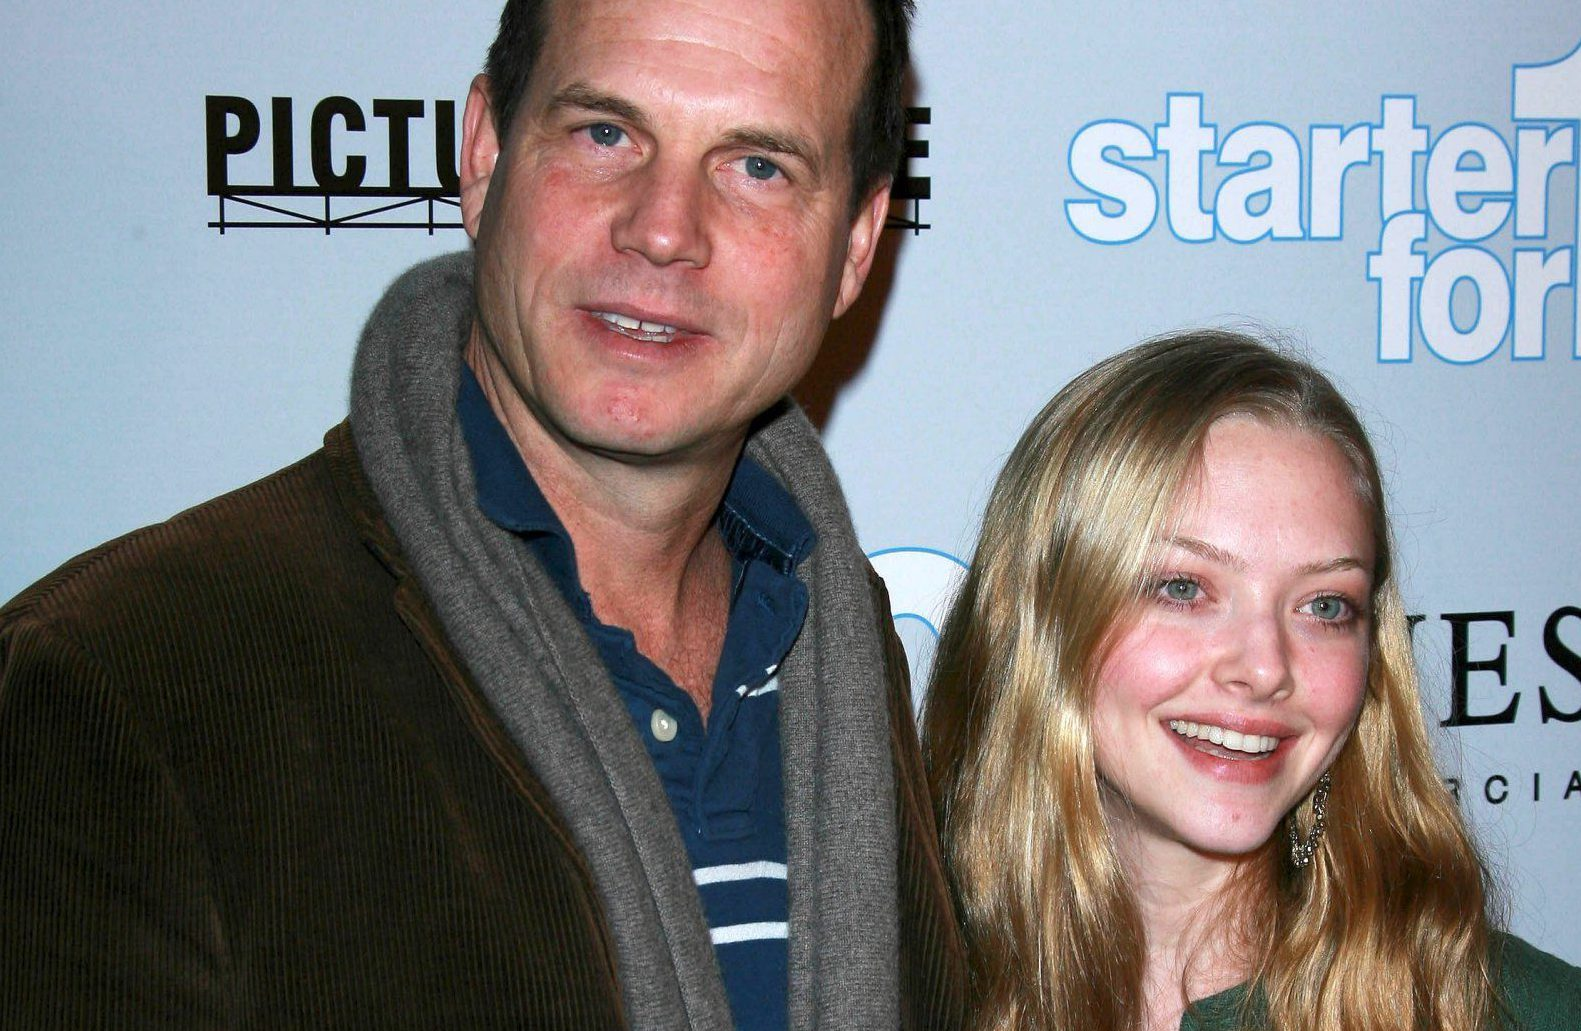 Amanda Seyfried pays tribute to her 'inspired' Big Love co-star Bill Paxton after his death